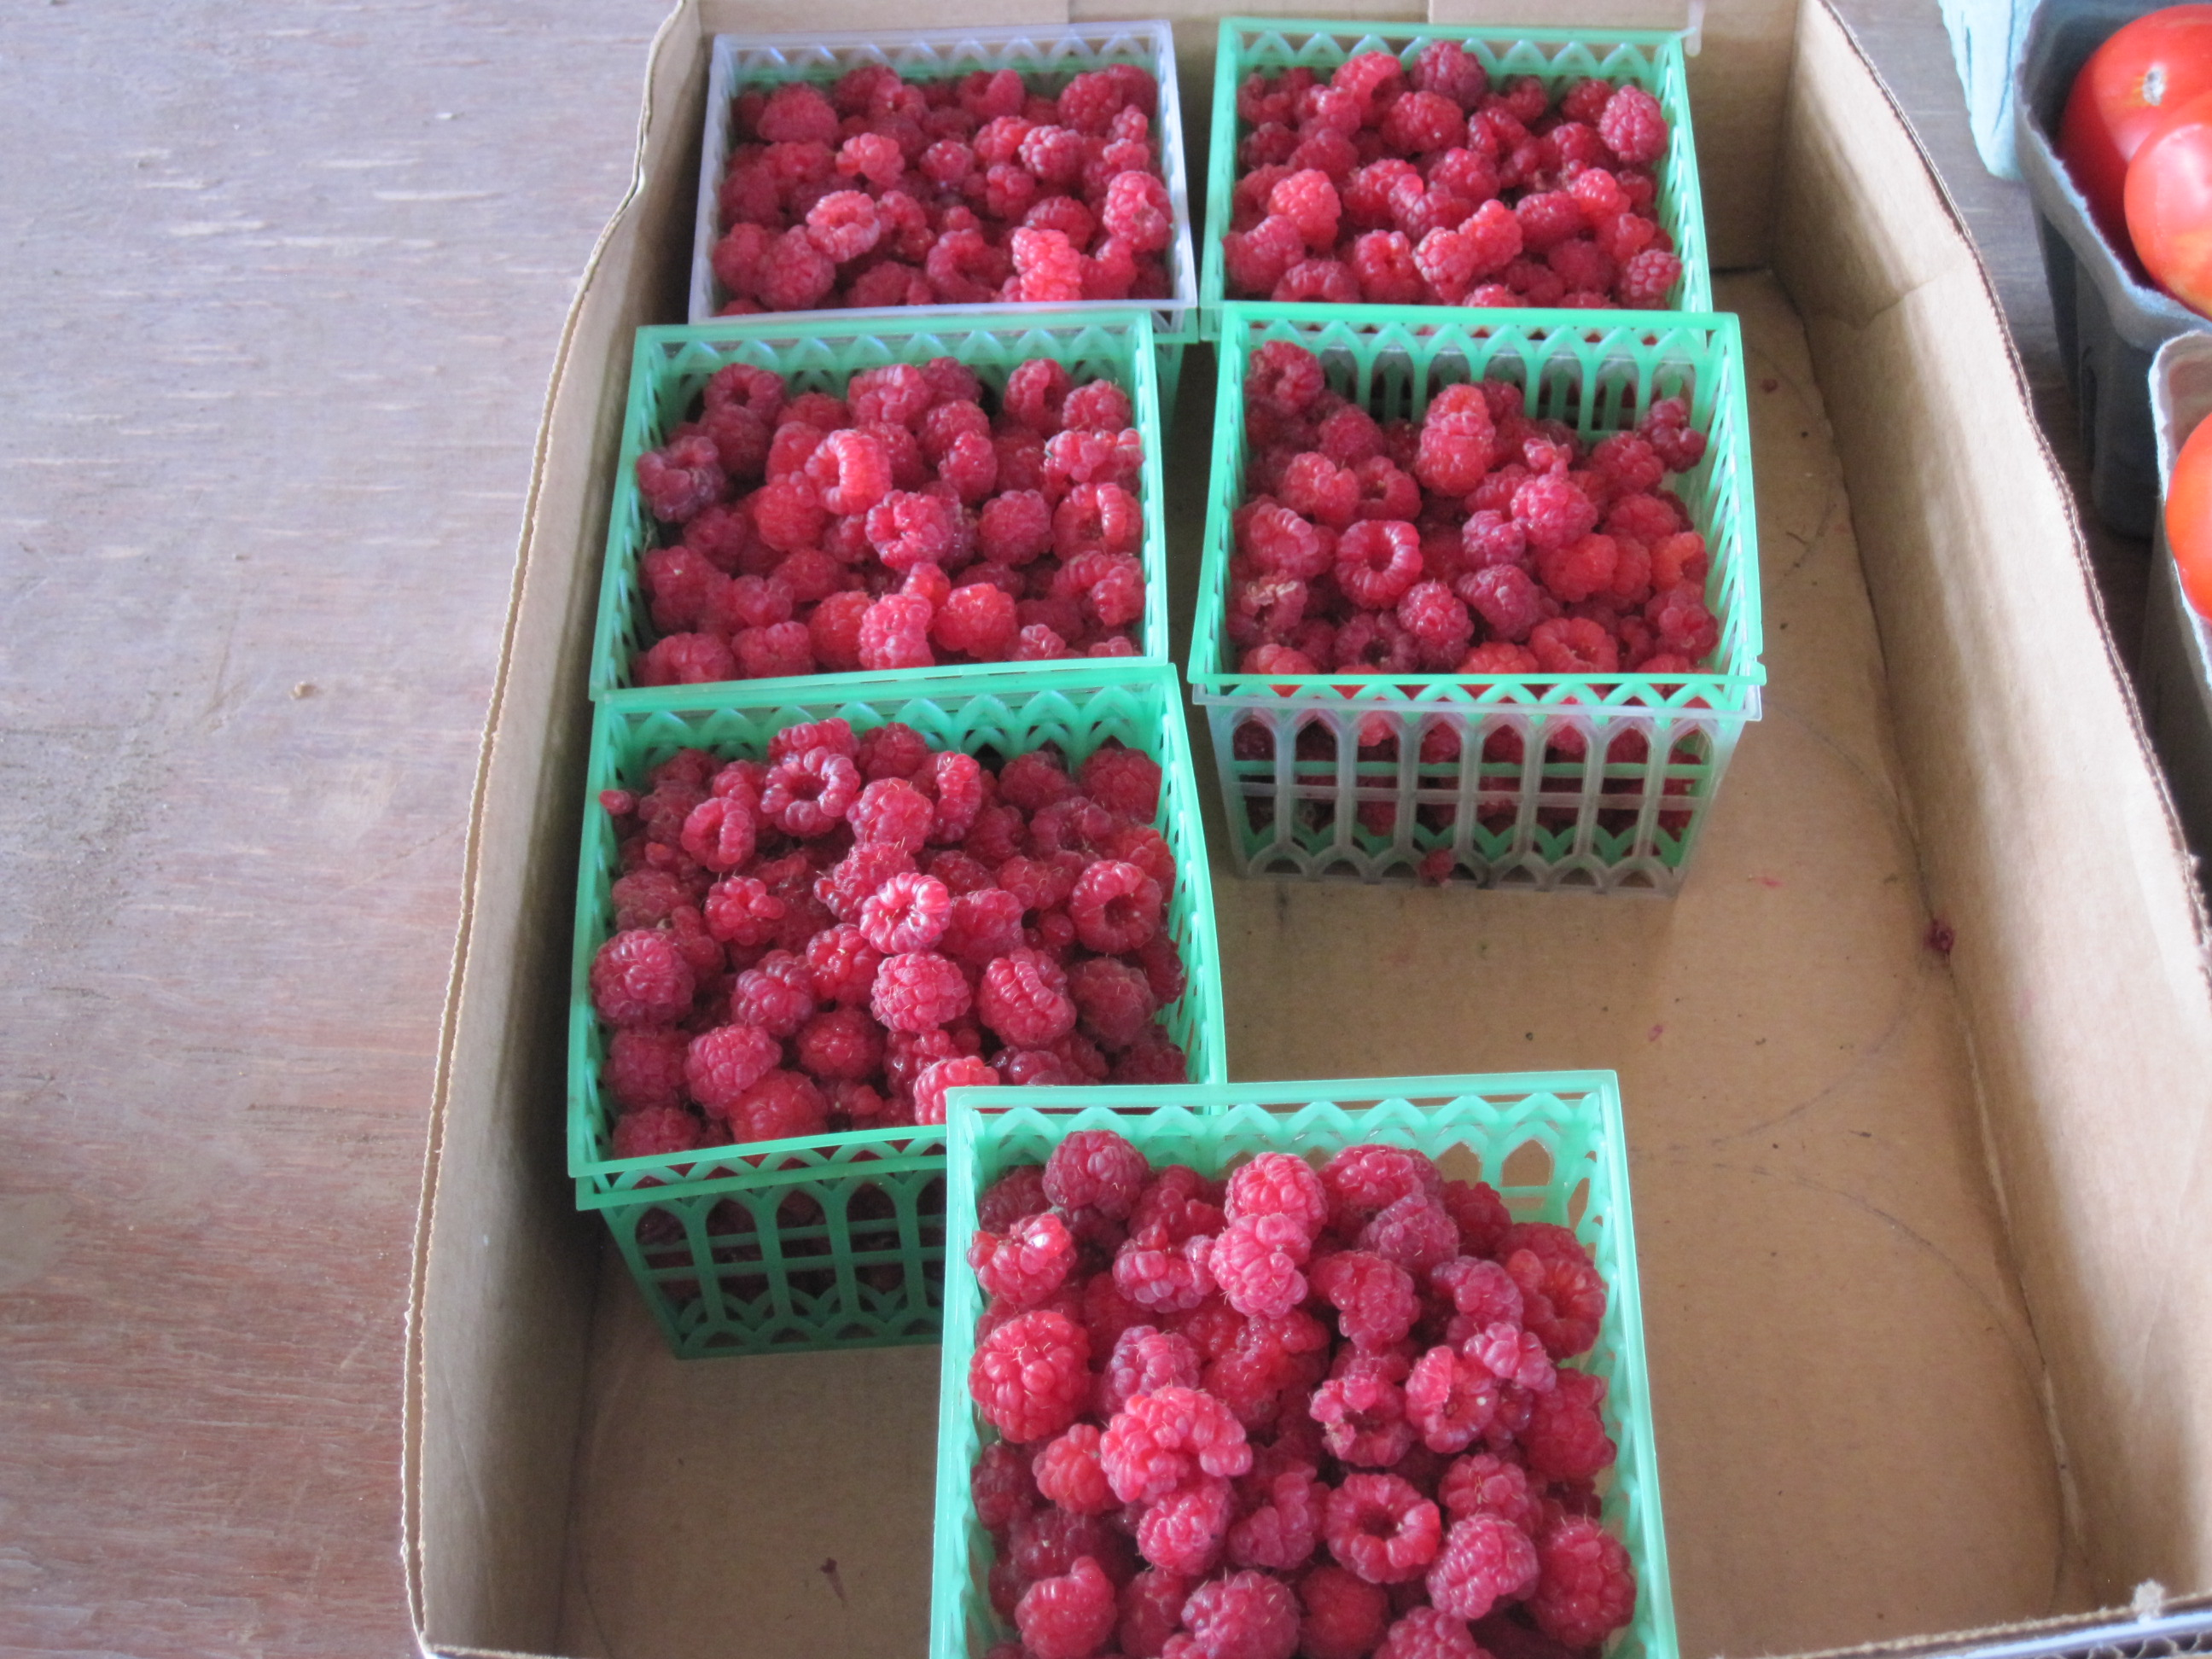 Our rasberries